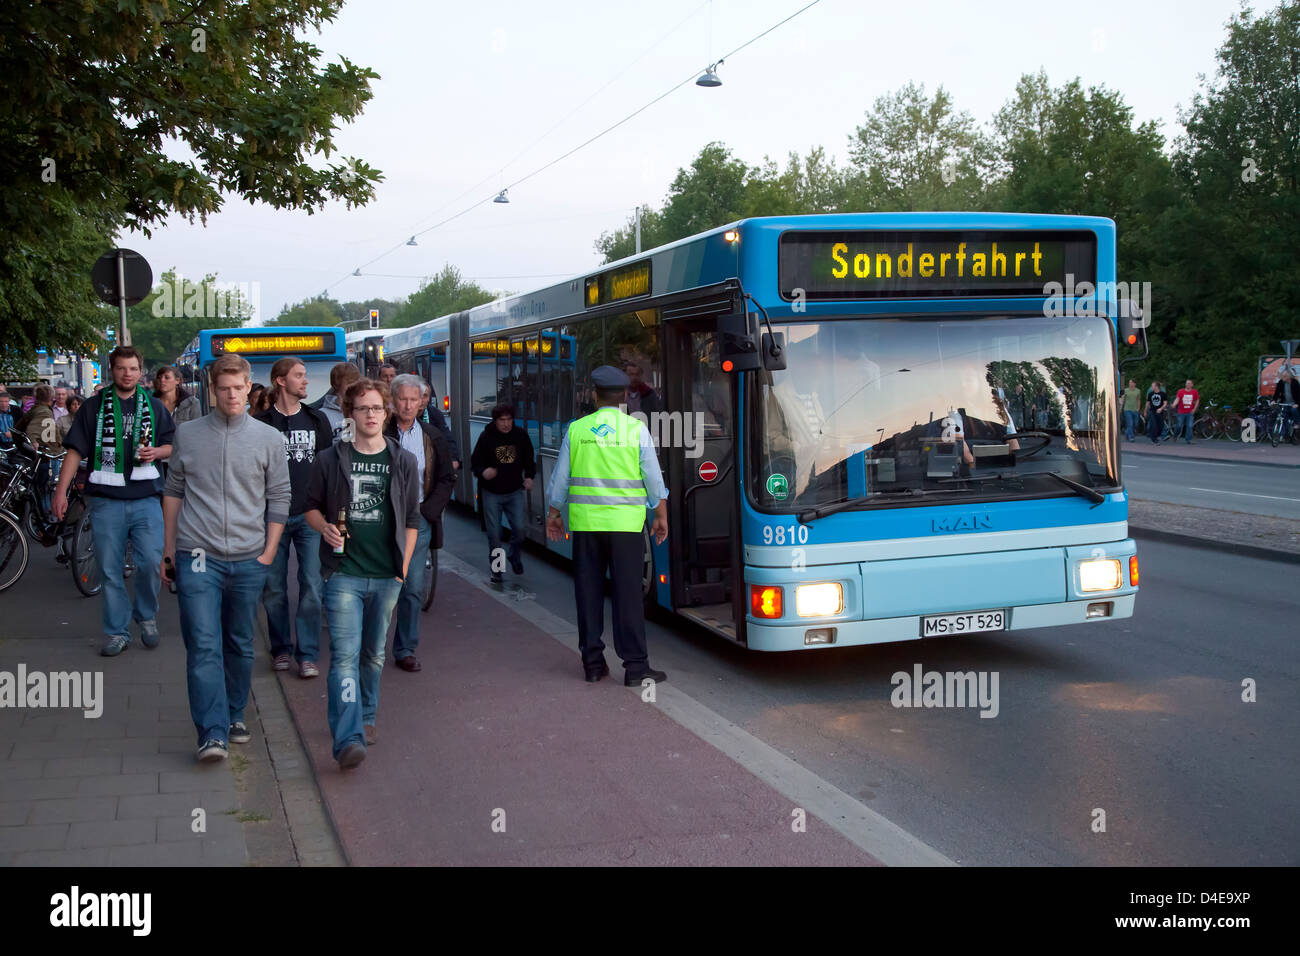 Muenster, Germany, special buses carrying football fans after the football game - Stock Image